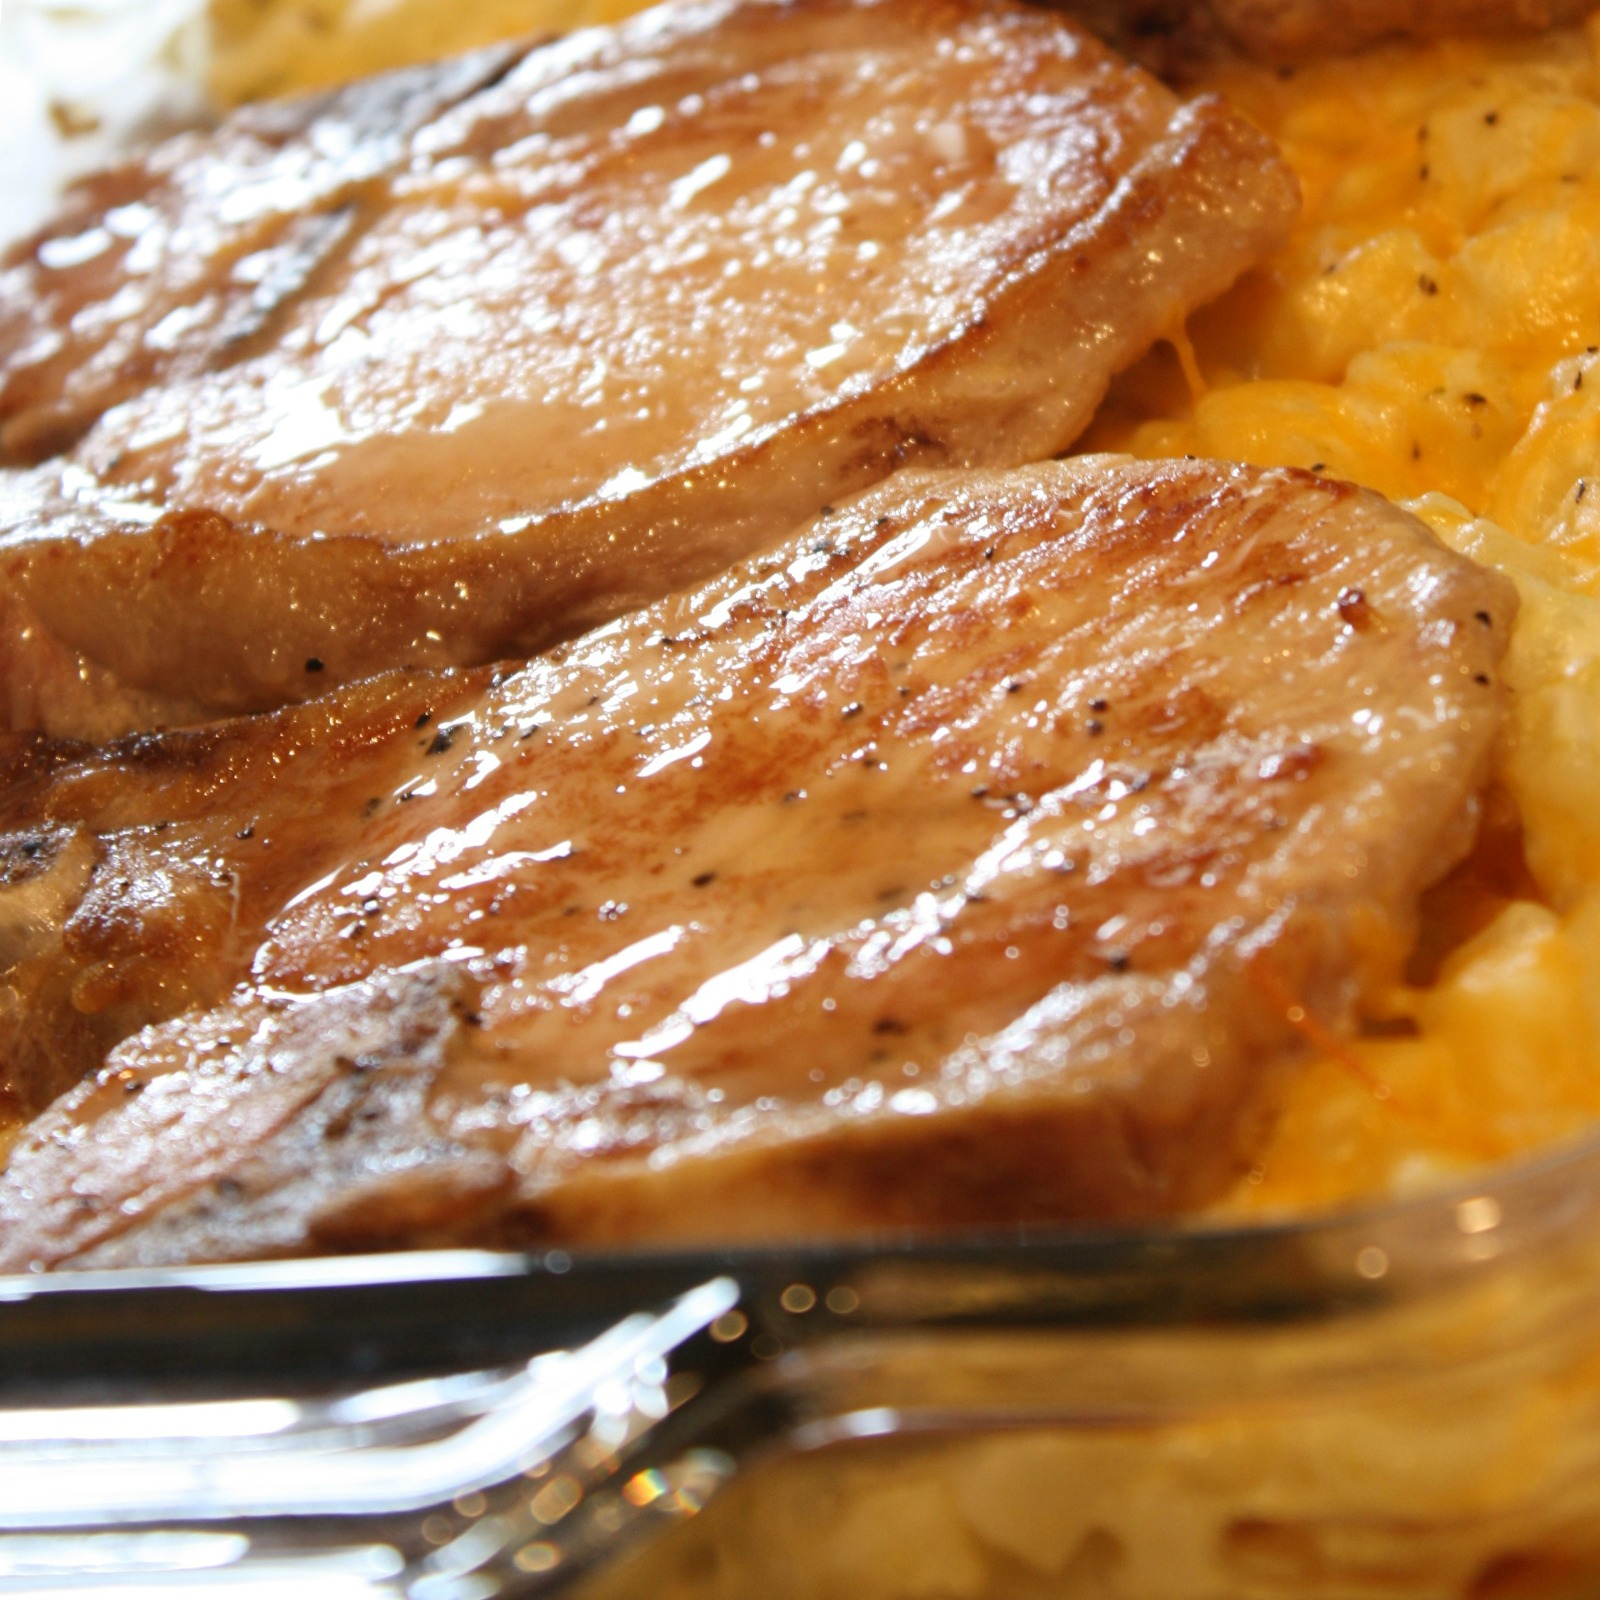 pork chops and potatoes in a baking dish